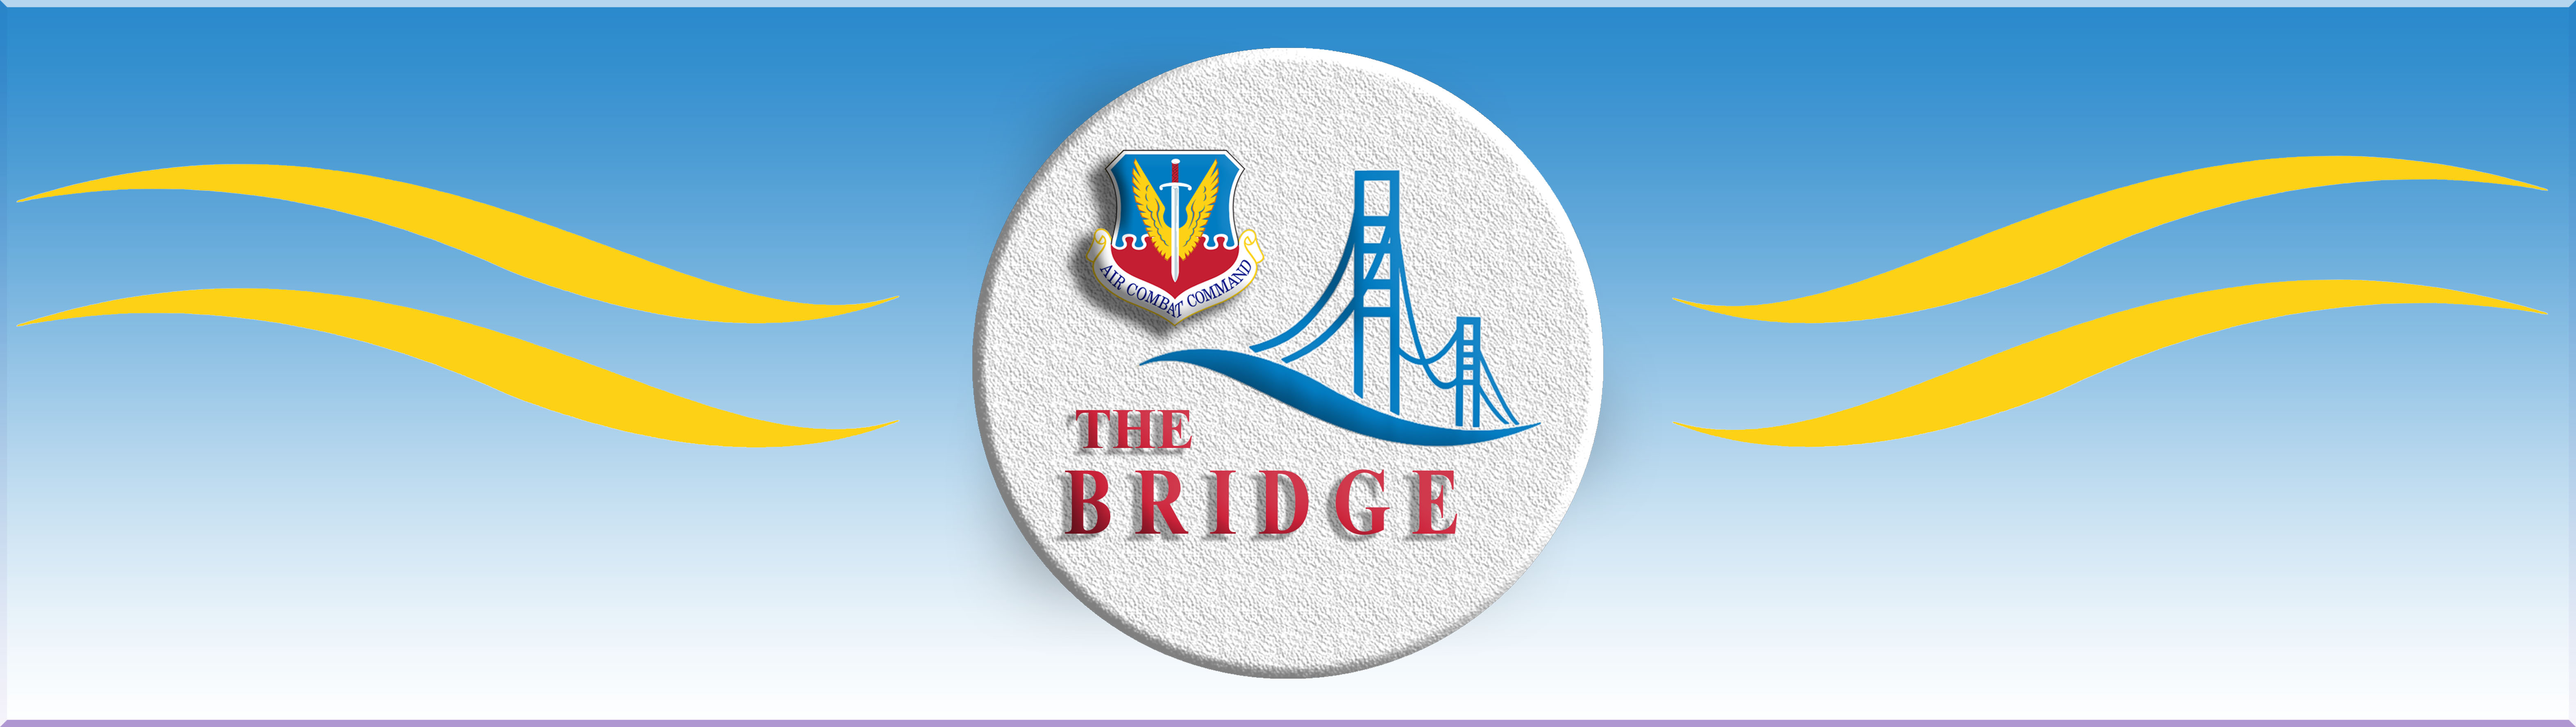 Link to The Bridge page